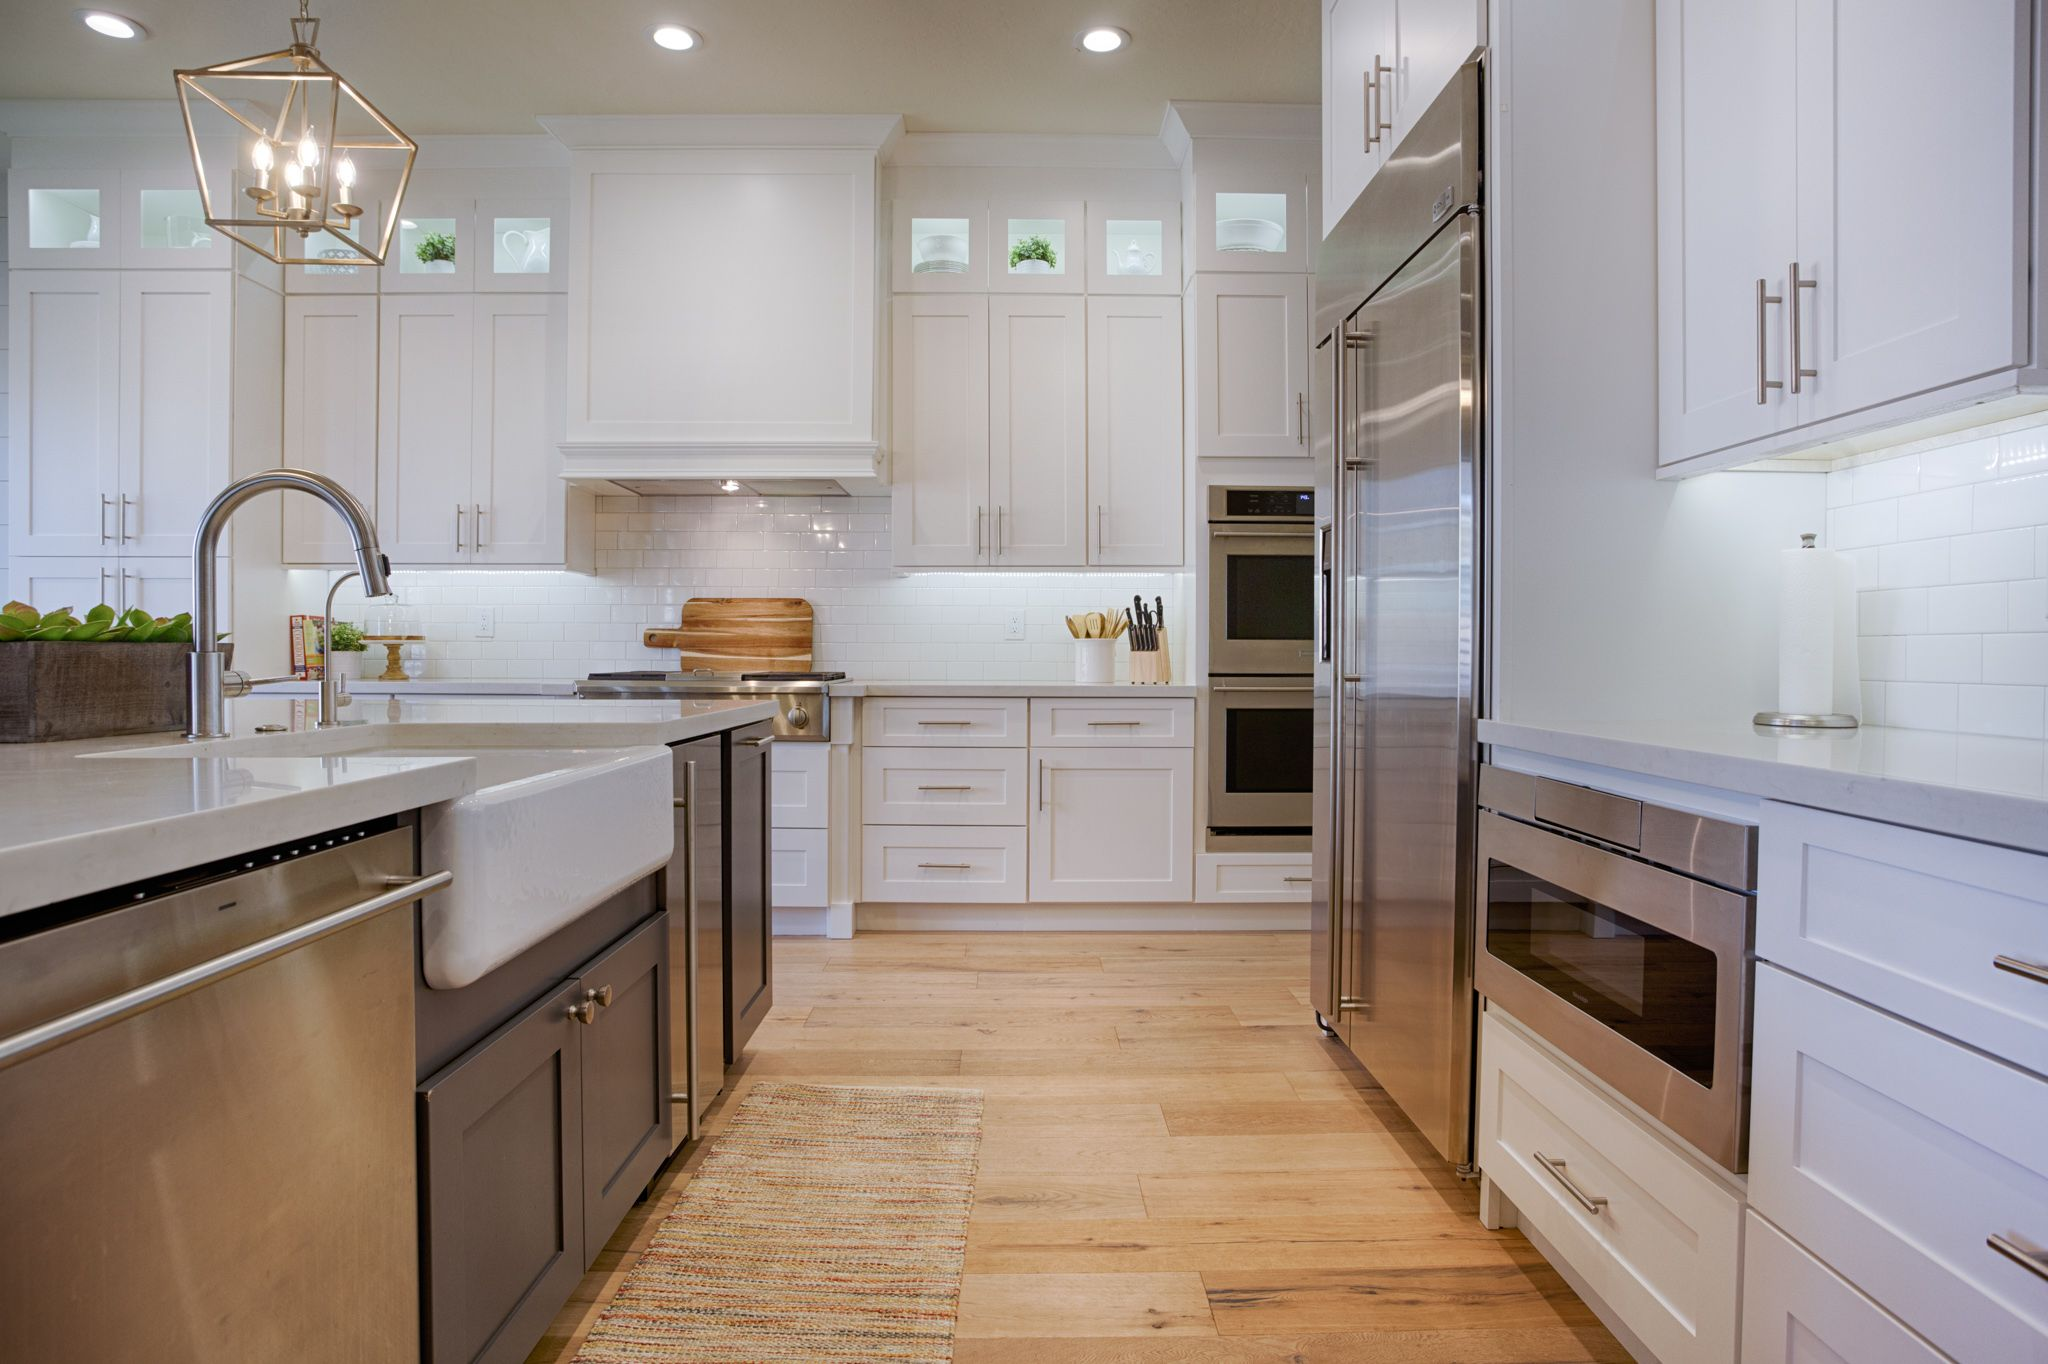 White Shaker Cabinets Gray Island And Light Wood Floorings Create Such A Soft Inviting Atmosphere In The Kitchen Custom Kitchen Cabinets Kitchen New Kitchen